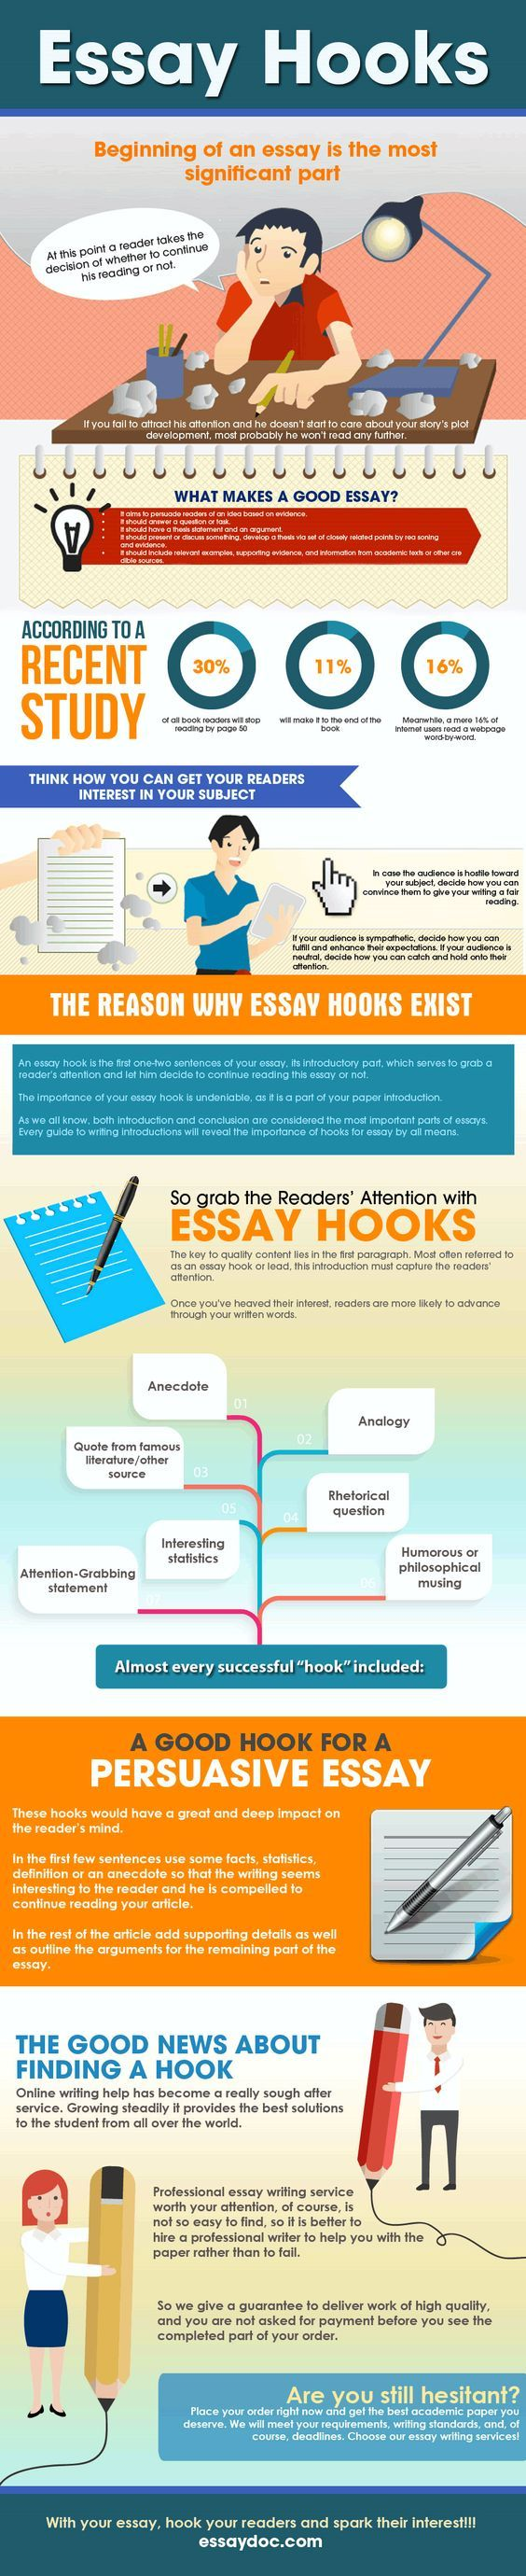 steps writing definition essay You can write an essay in 5 steps, and we'll show you how, including topic ideas and examples.